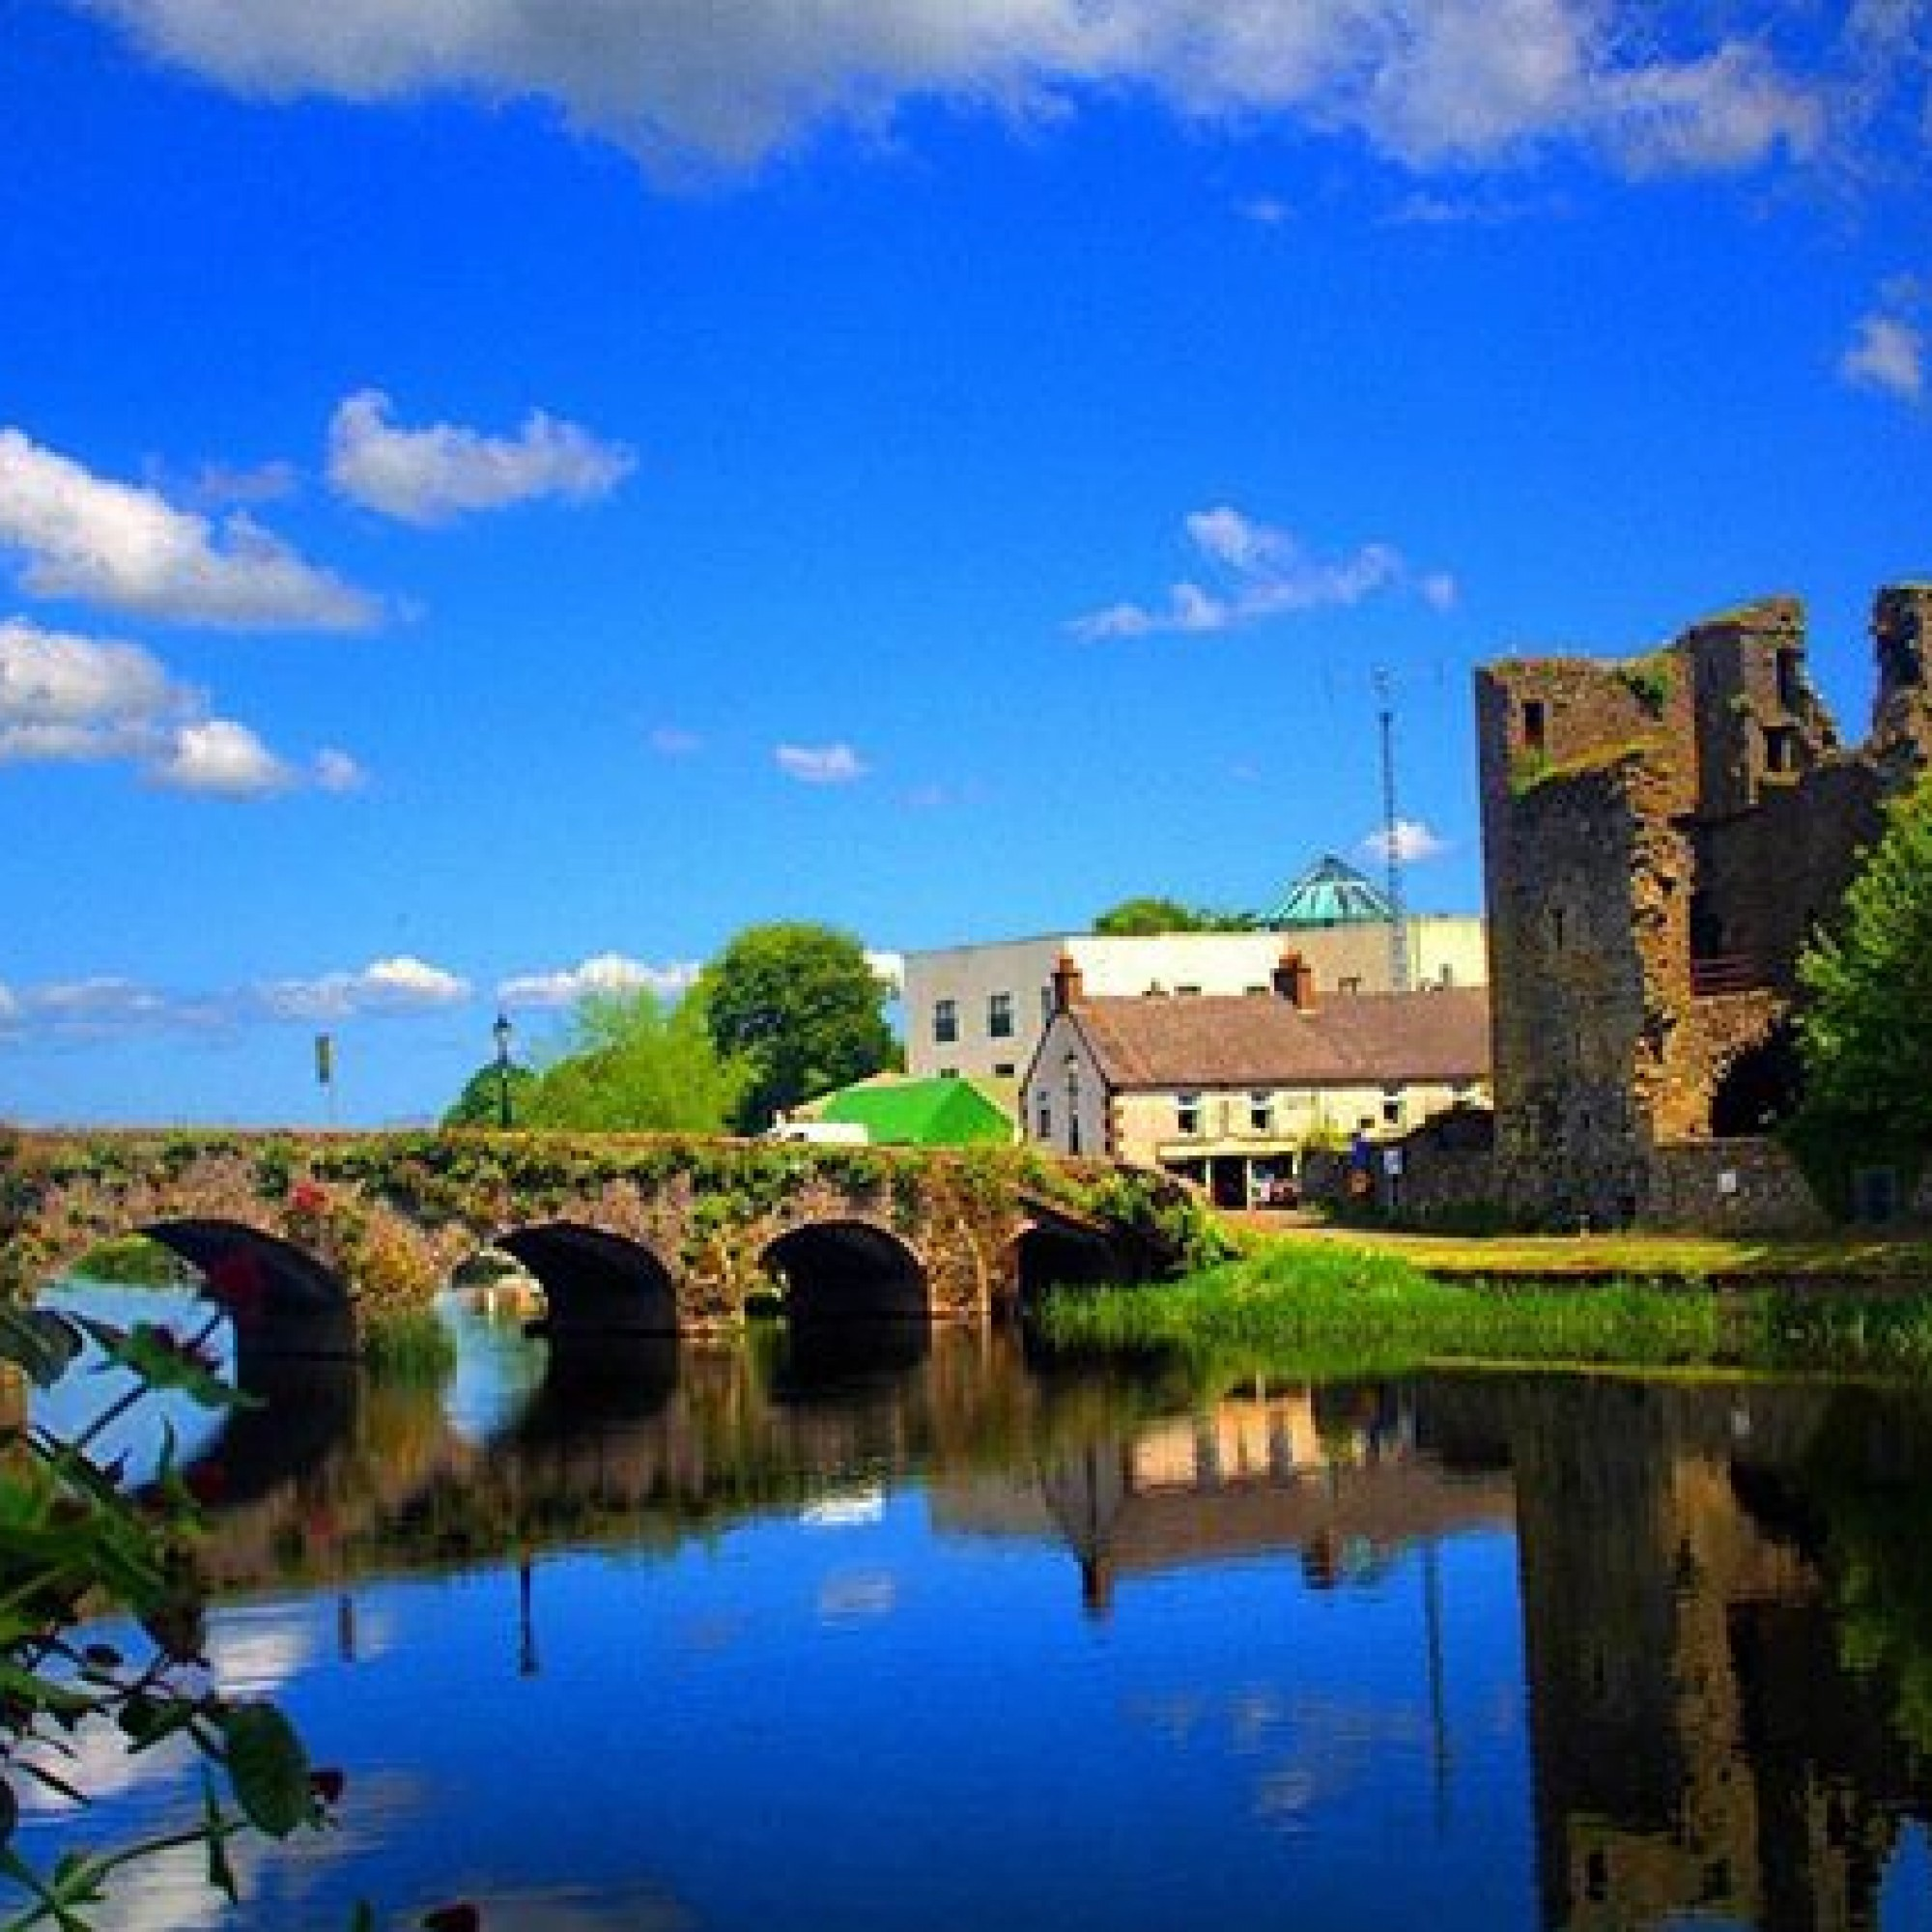 15 beautiful photos that would make you proud to be from Carlow